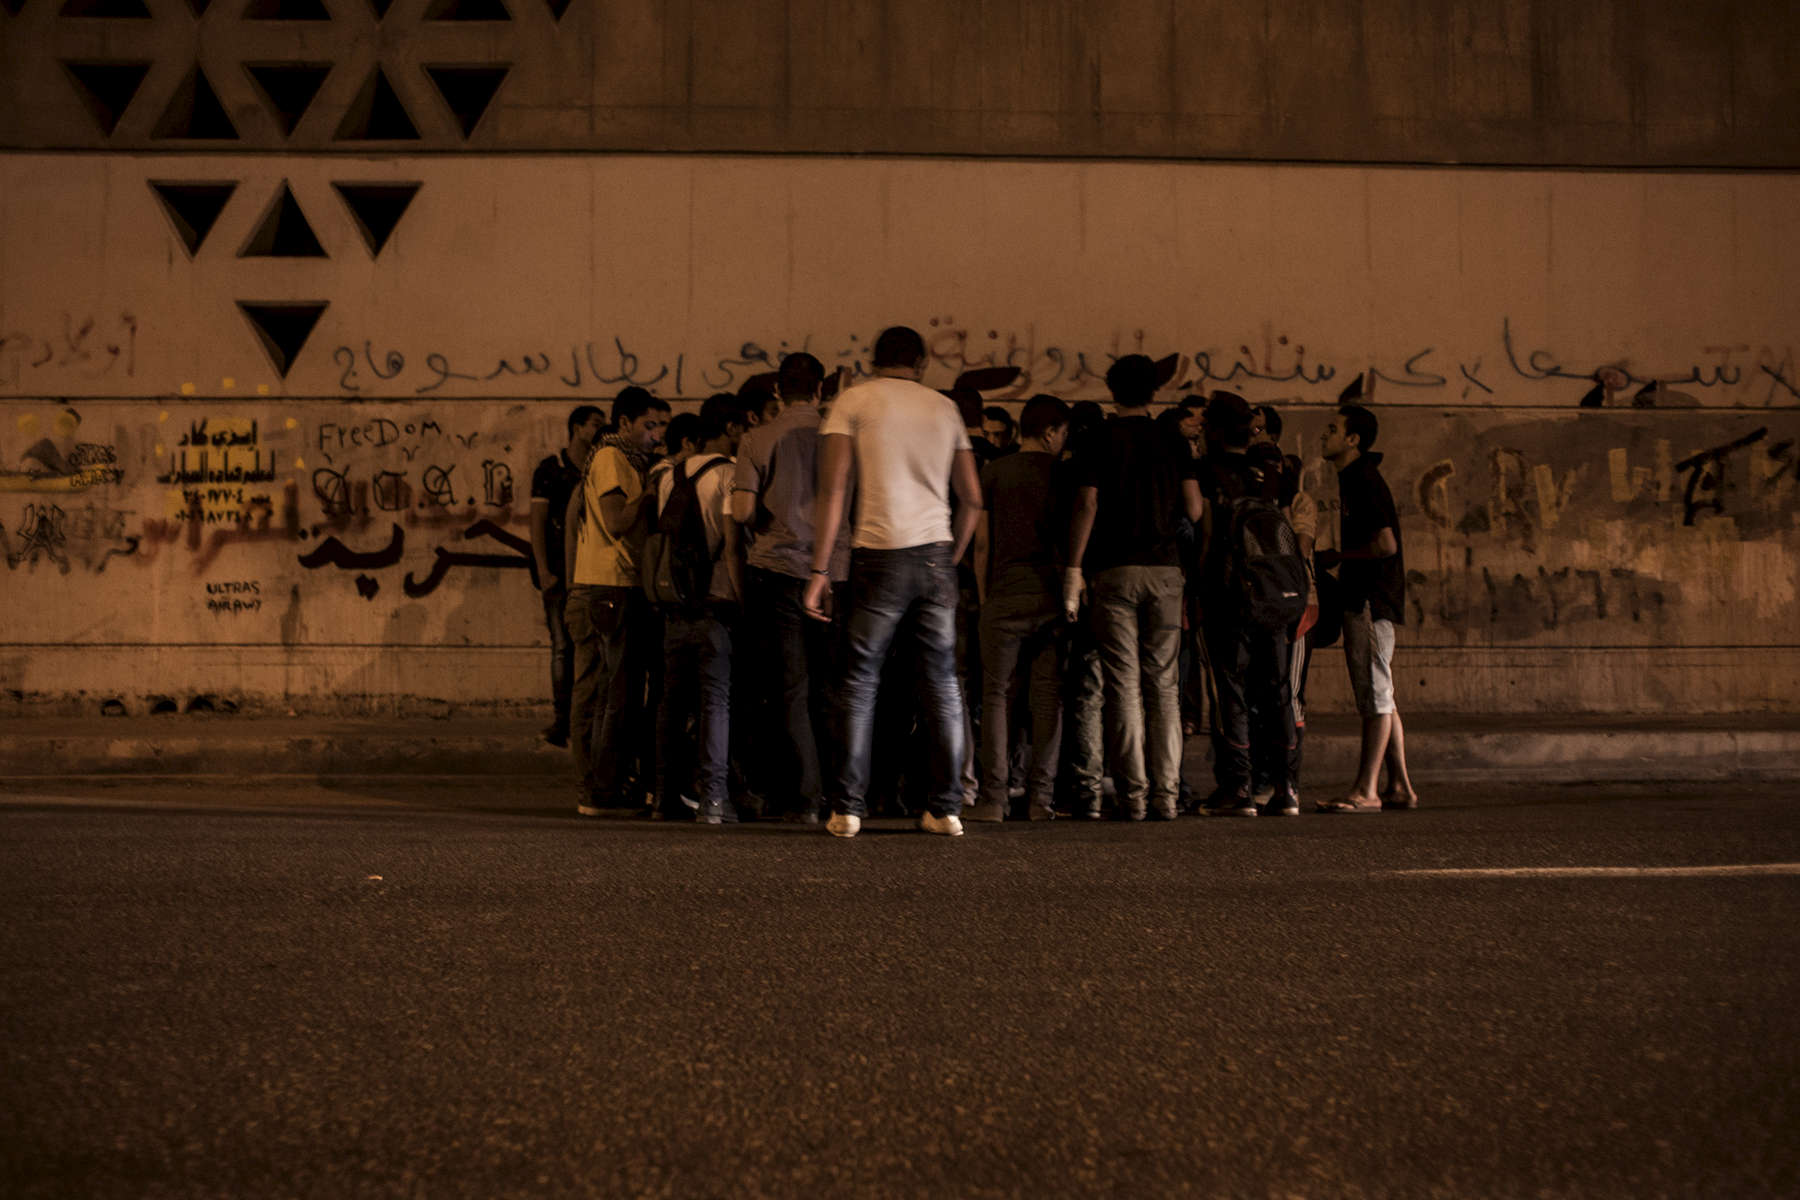 Ultras holding a secret meeting next to the International Stadium in Cairo. The Ultras favorite football club, Al Ahly, was usually playing its matches inside the stadium. But because of the stadium massacre in Port Said professional football matches where suspende in Egypt for months